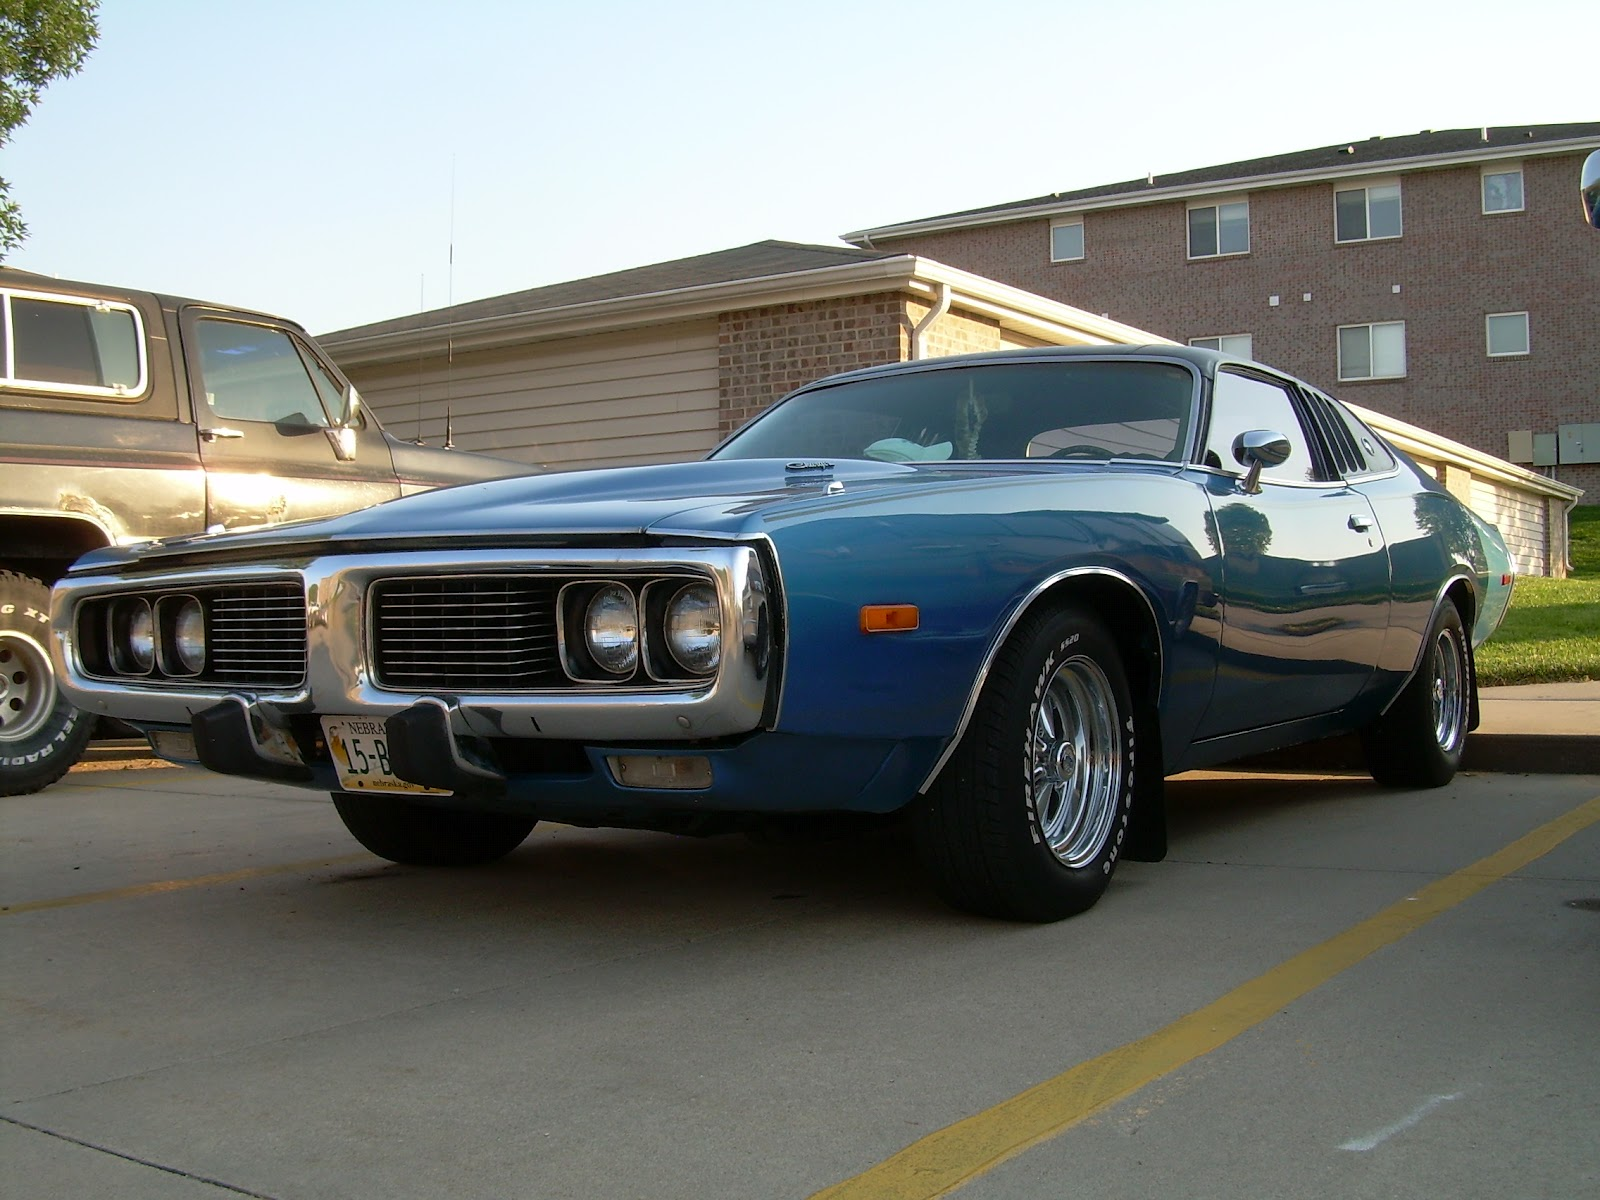 1973 Dodge Charger SE. Posted by Michael at 2:51 PM